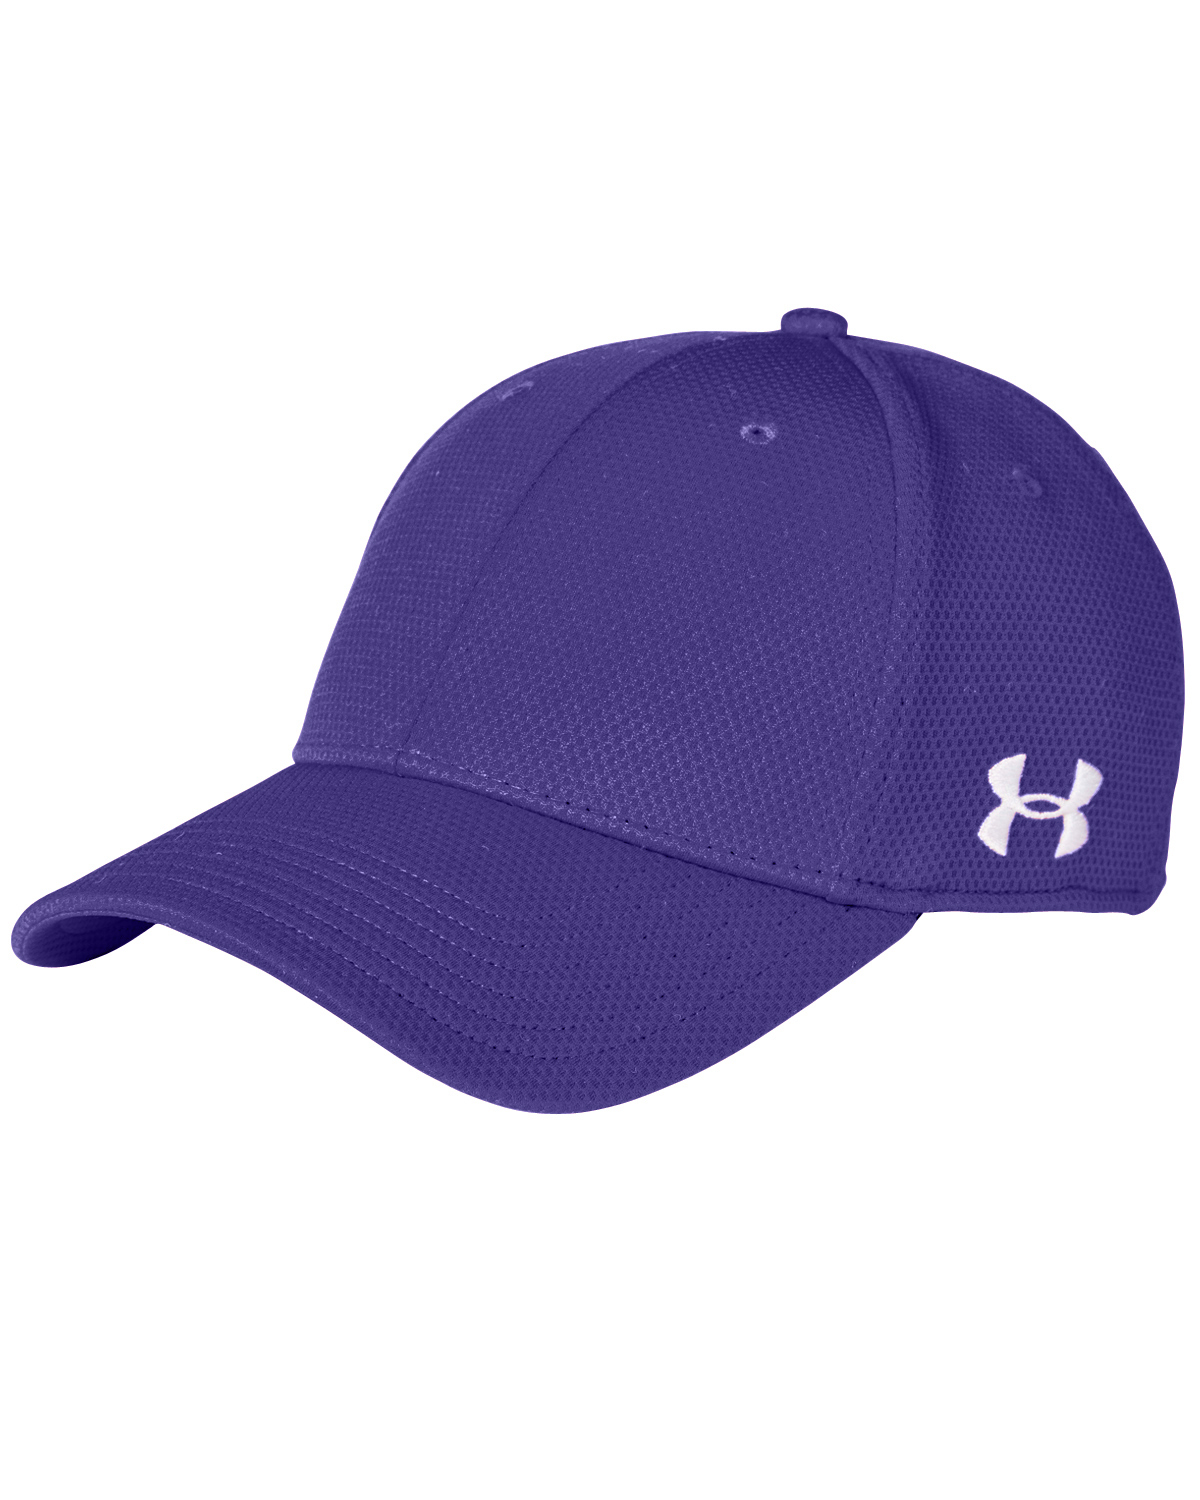 UNISEX UA CURVED BILL CAP – SOLID